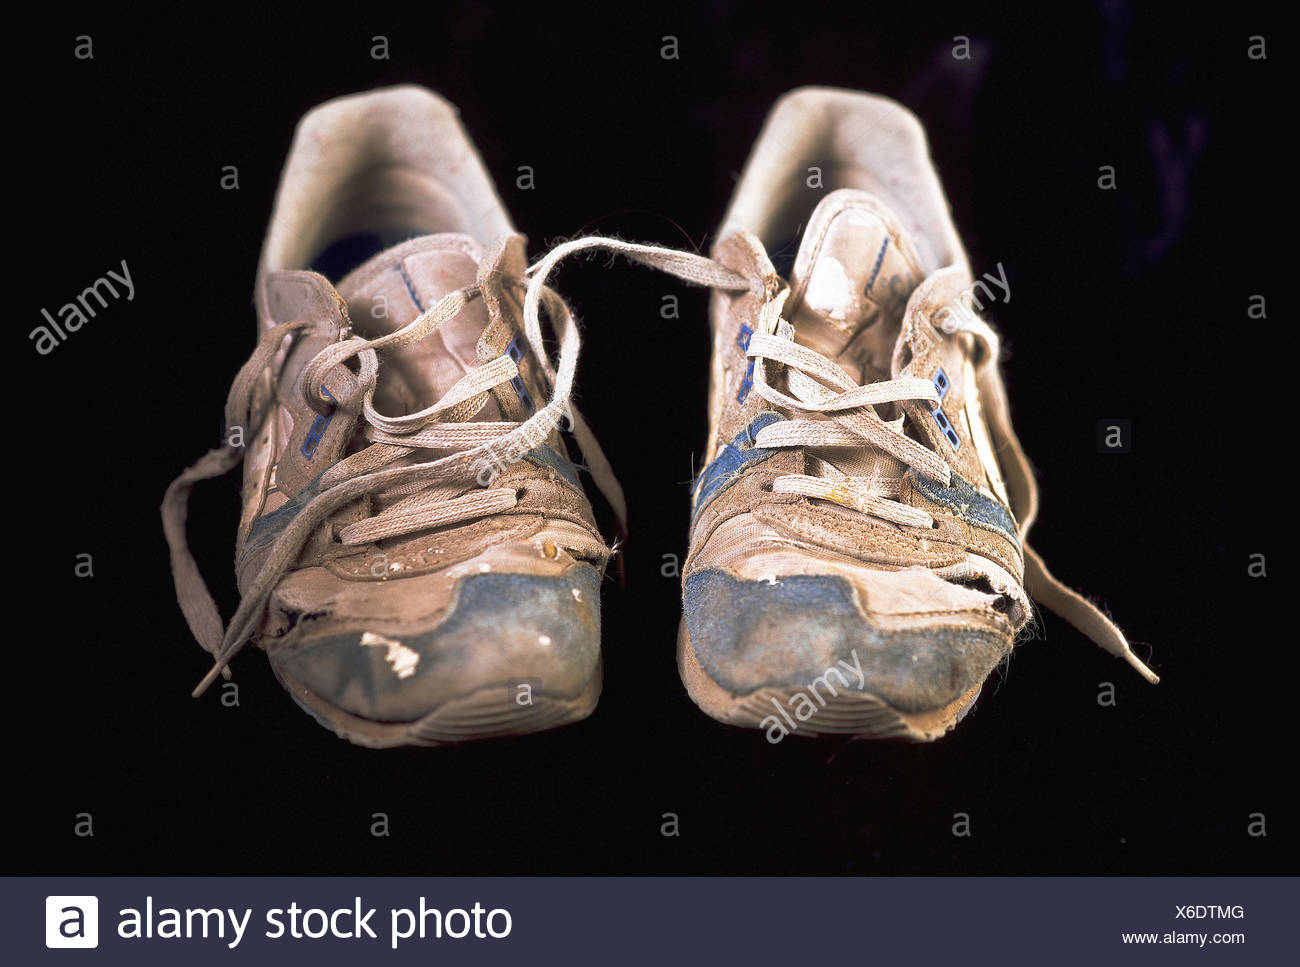 Worn-out sneakers - Stock Image